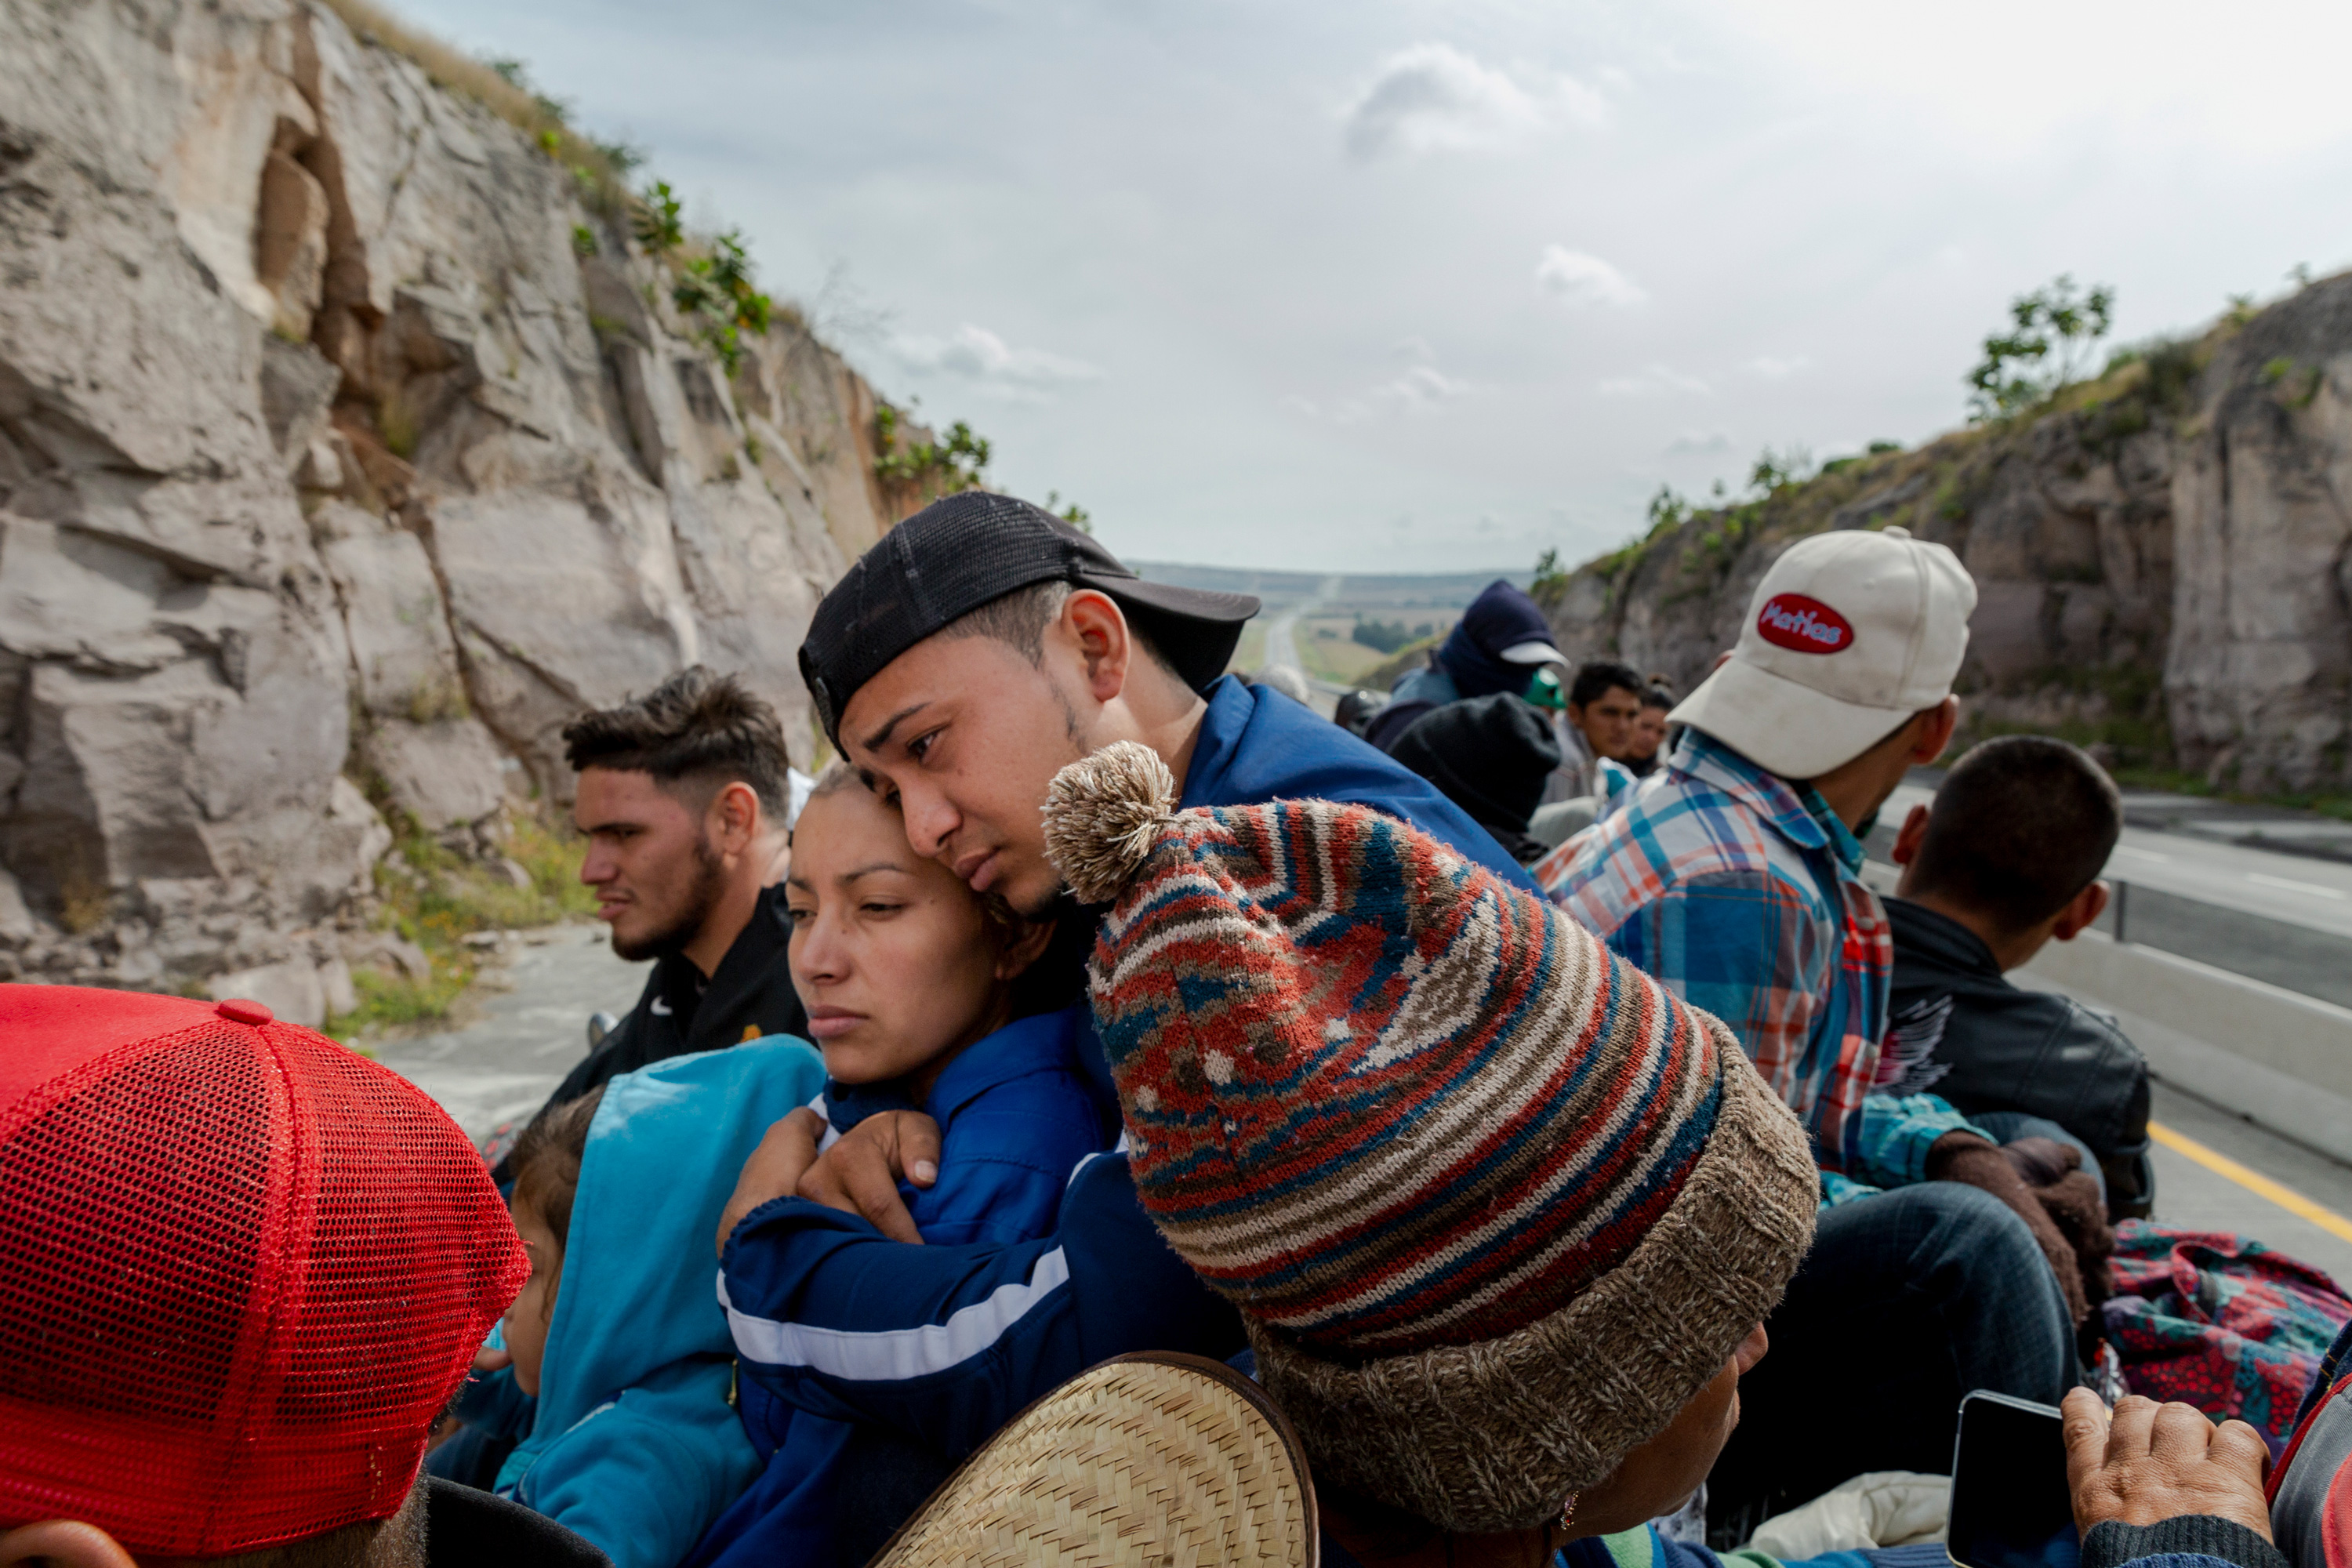 Aldo Ivan, 18 from Guatemala and Griselda, 22 from Honduras embrace on top of a cargo truck heading north bound towards Guadalajara on November 12, 2018 where they will stay overnight at a temporary migrant shelter set up by the Mexican government on their way to their Tijuana destination on the first migrant caravan. Photographer: Mark Abramson